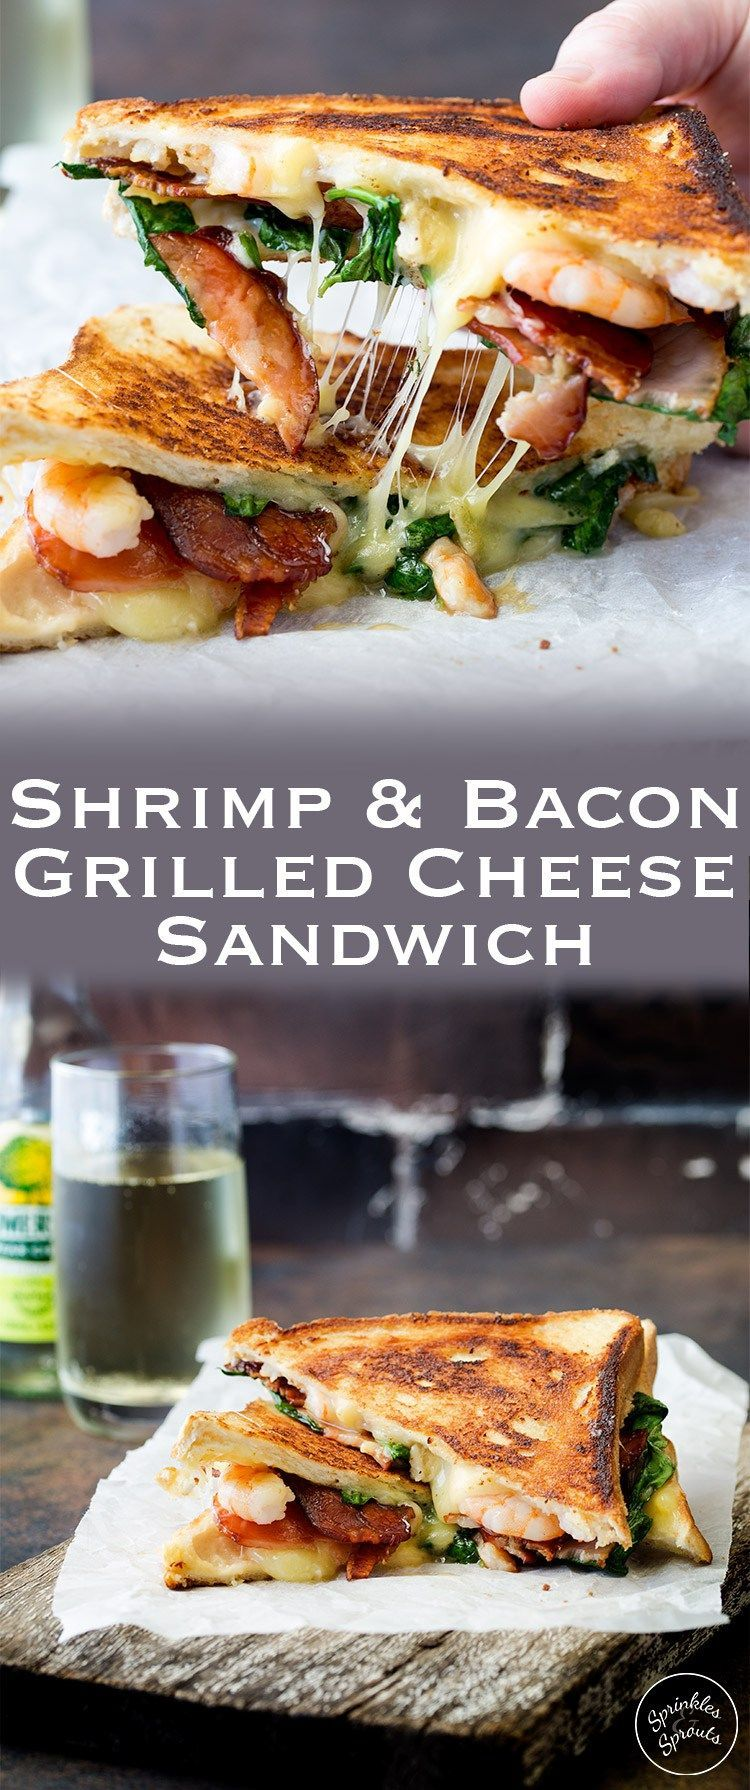 Shrimp and Bacon Grilled Cheese Sandwich | Sprinkles and Sprouts